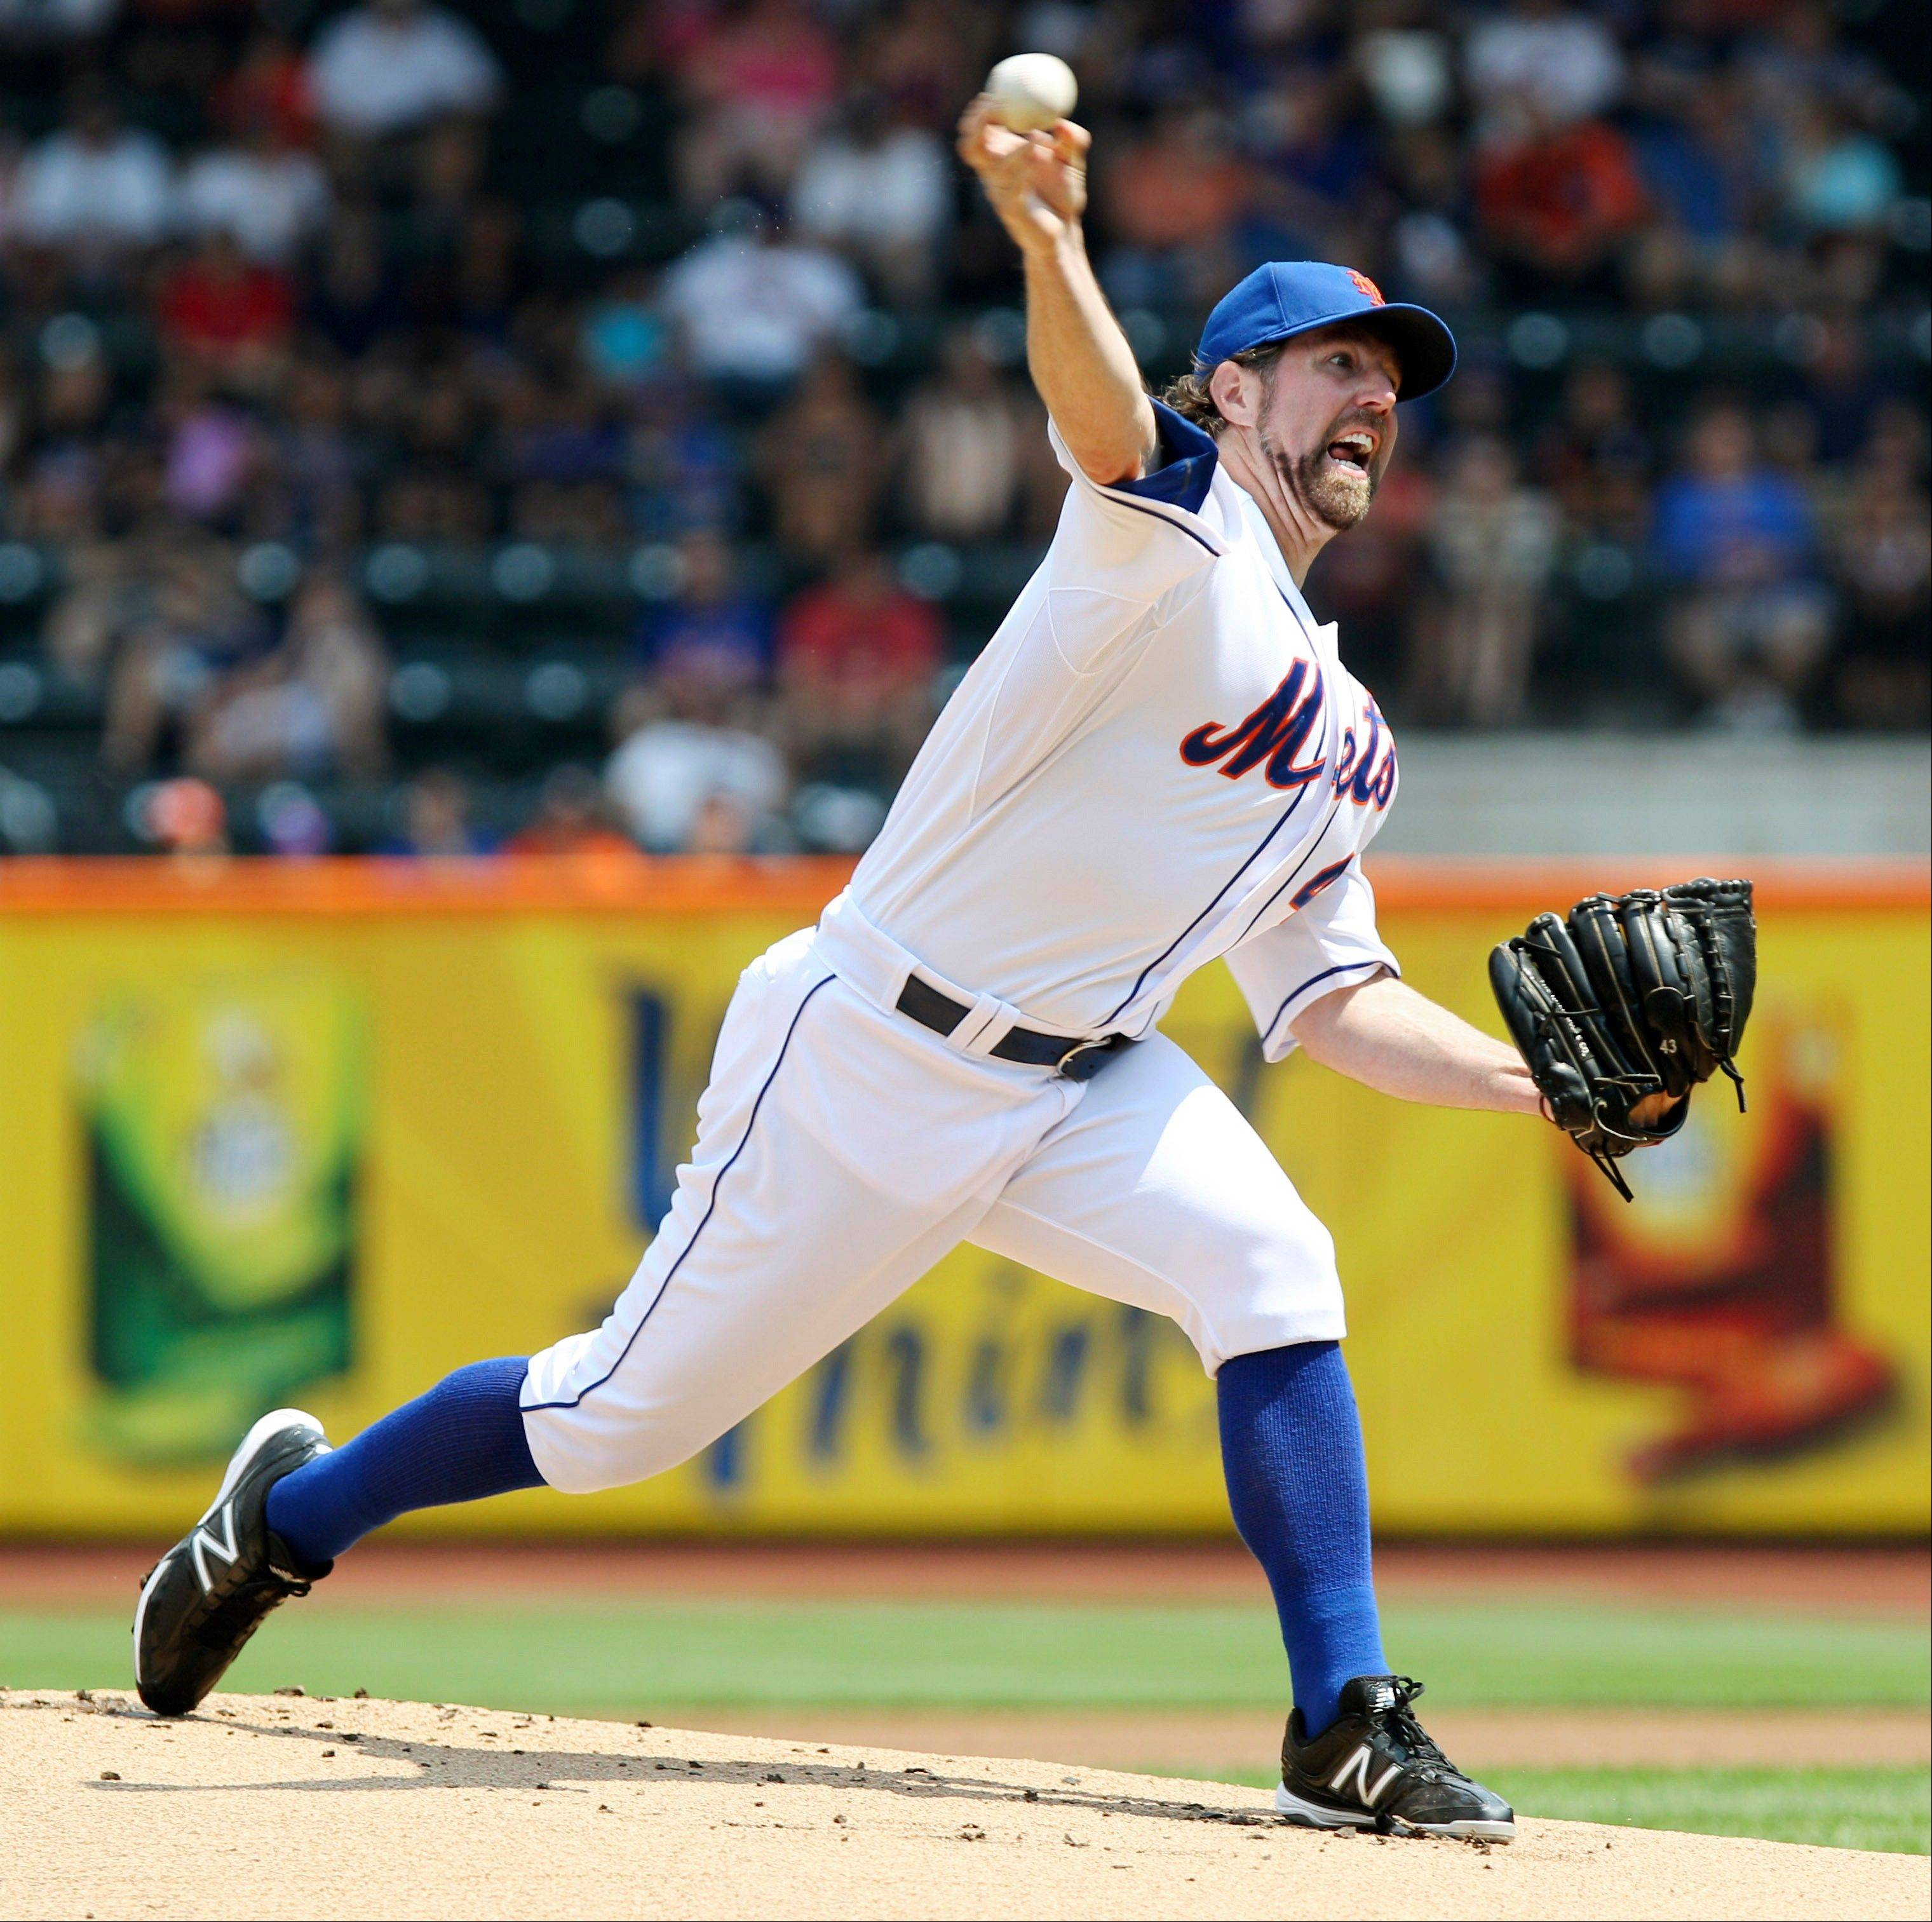 New York Mets pitcher R.A. Dickey became the first pitcher who relied predominantly on a knuckleball to win the Cy Young Award, an achievement mentors such as Hall of Famer Phil Niekro are quite proud of.